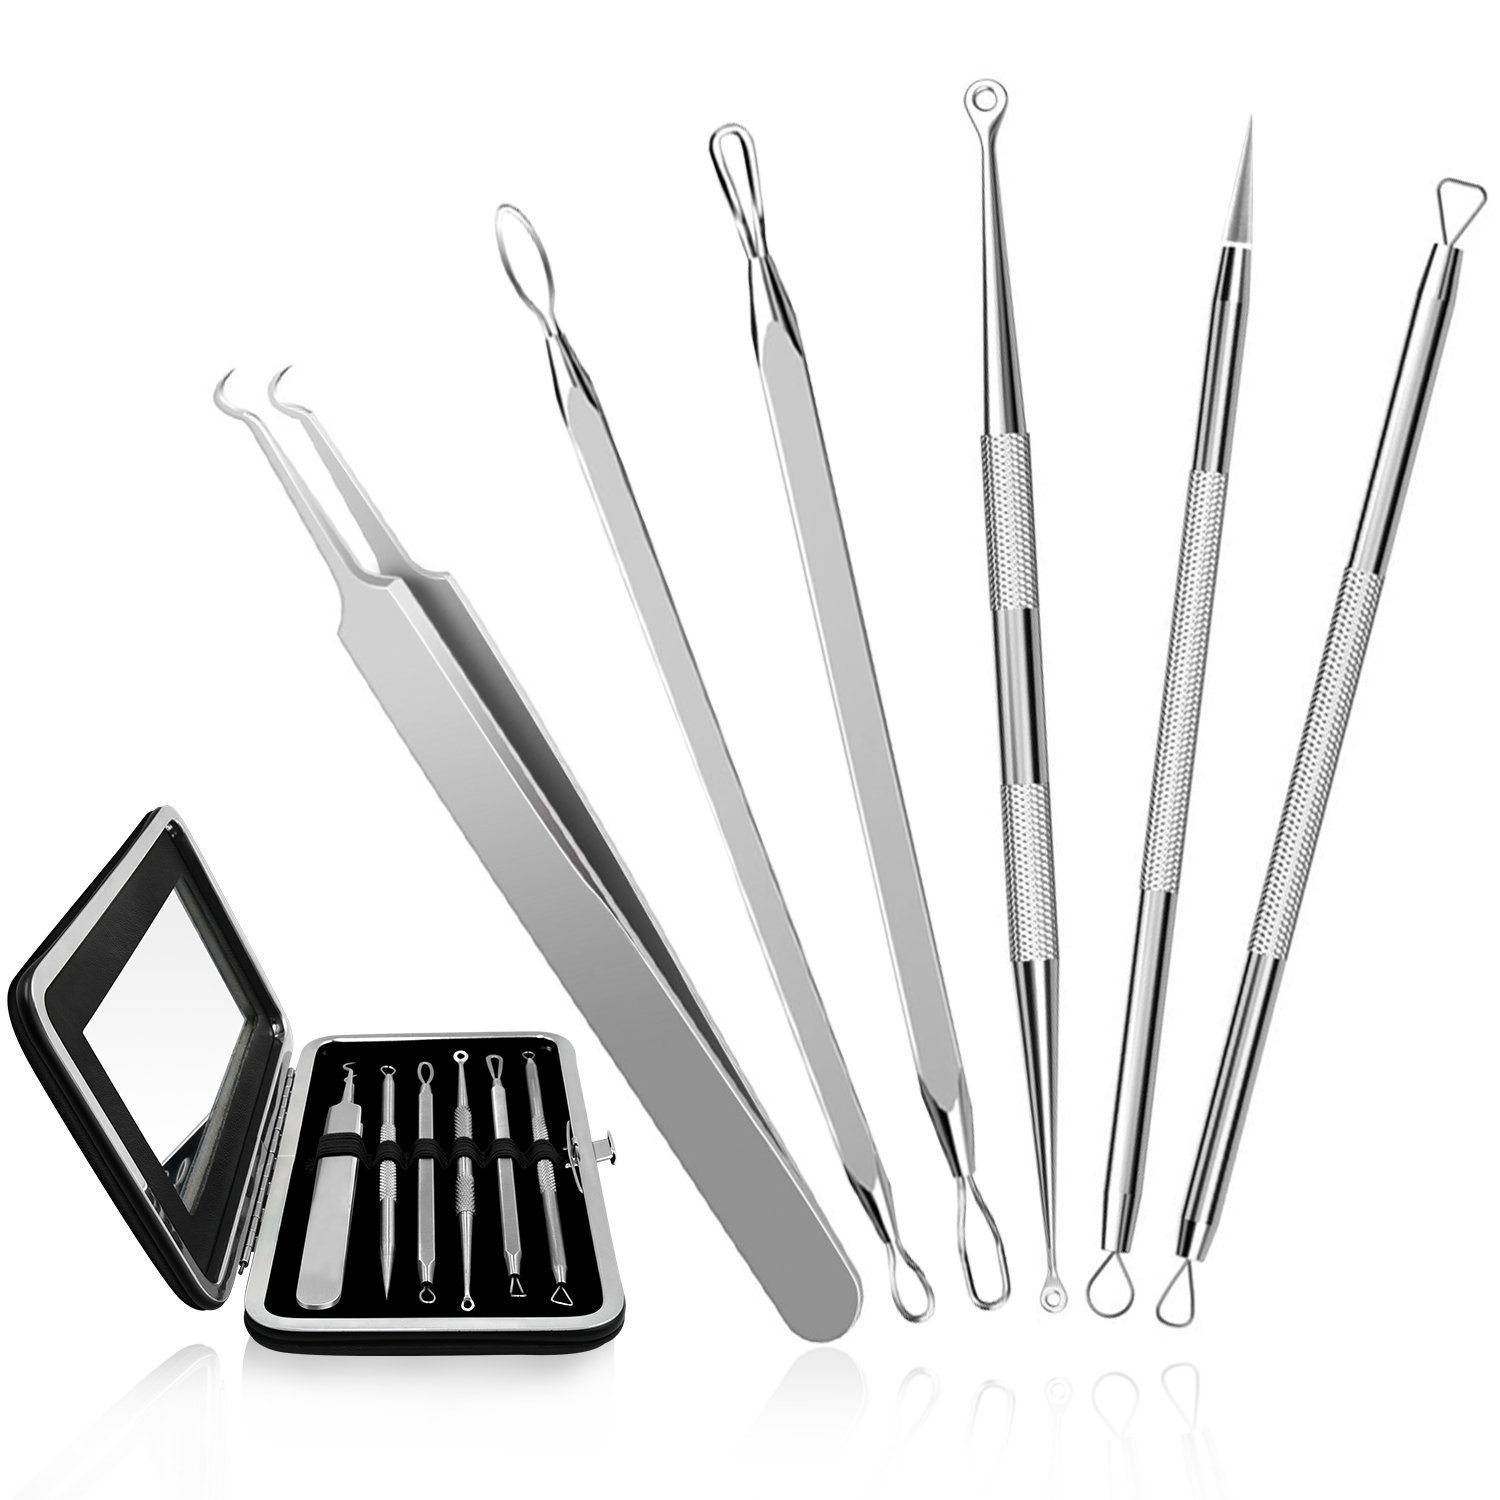 CHIMOCEE Professional Surgical Blackhead Remover Tools